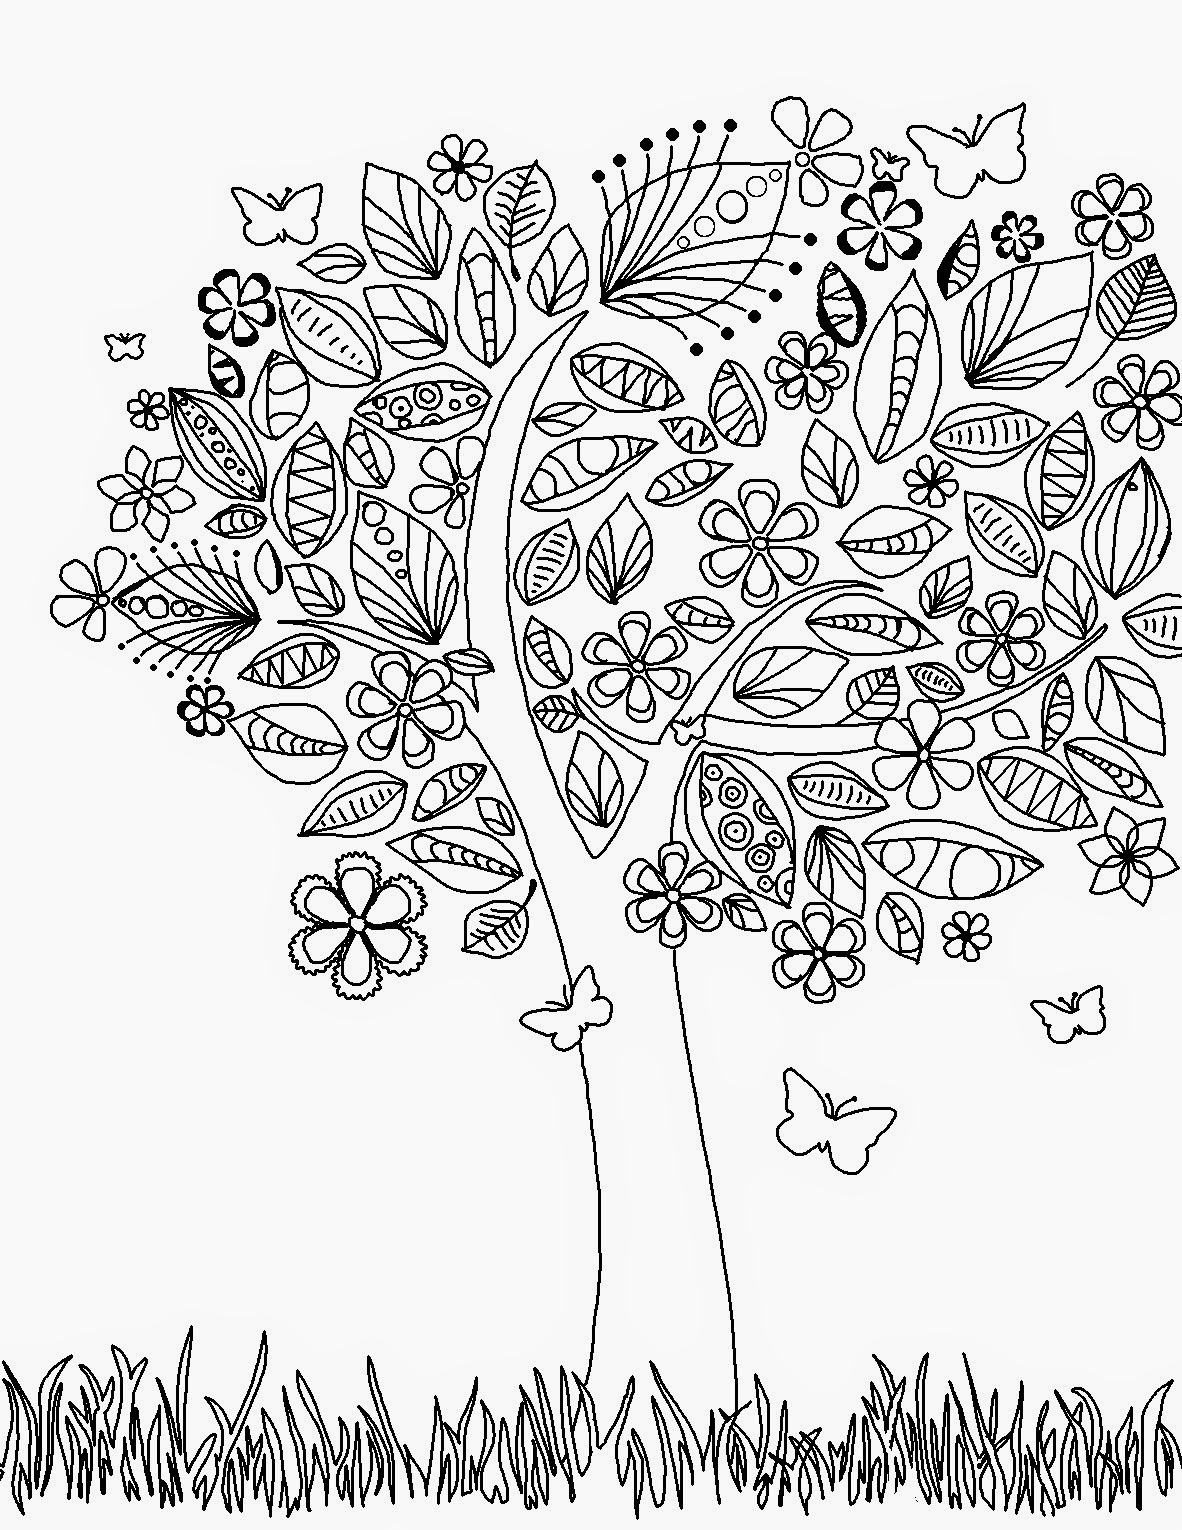 Coloring Sheet For Kids Coloring Pages Blog